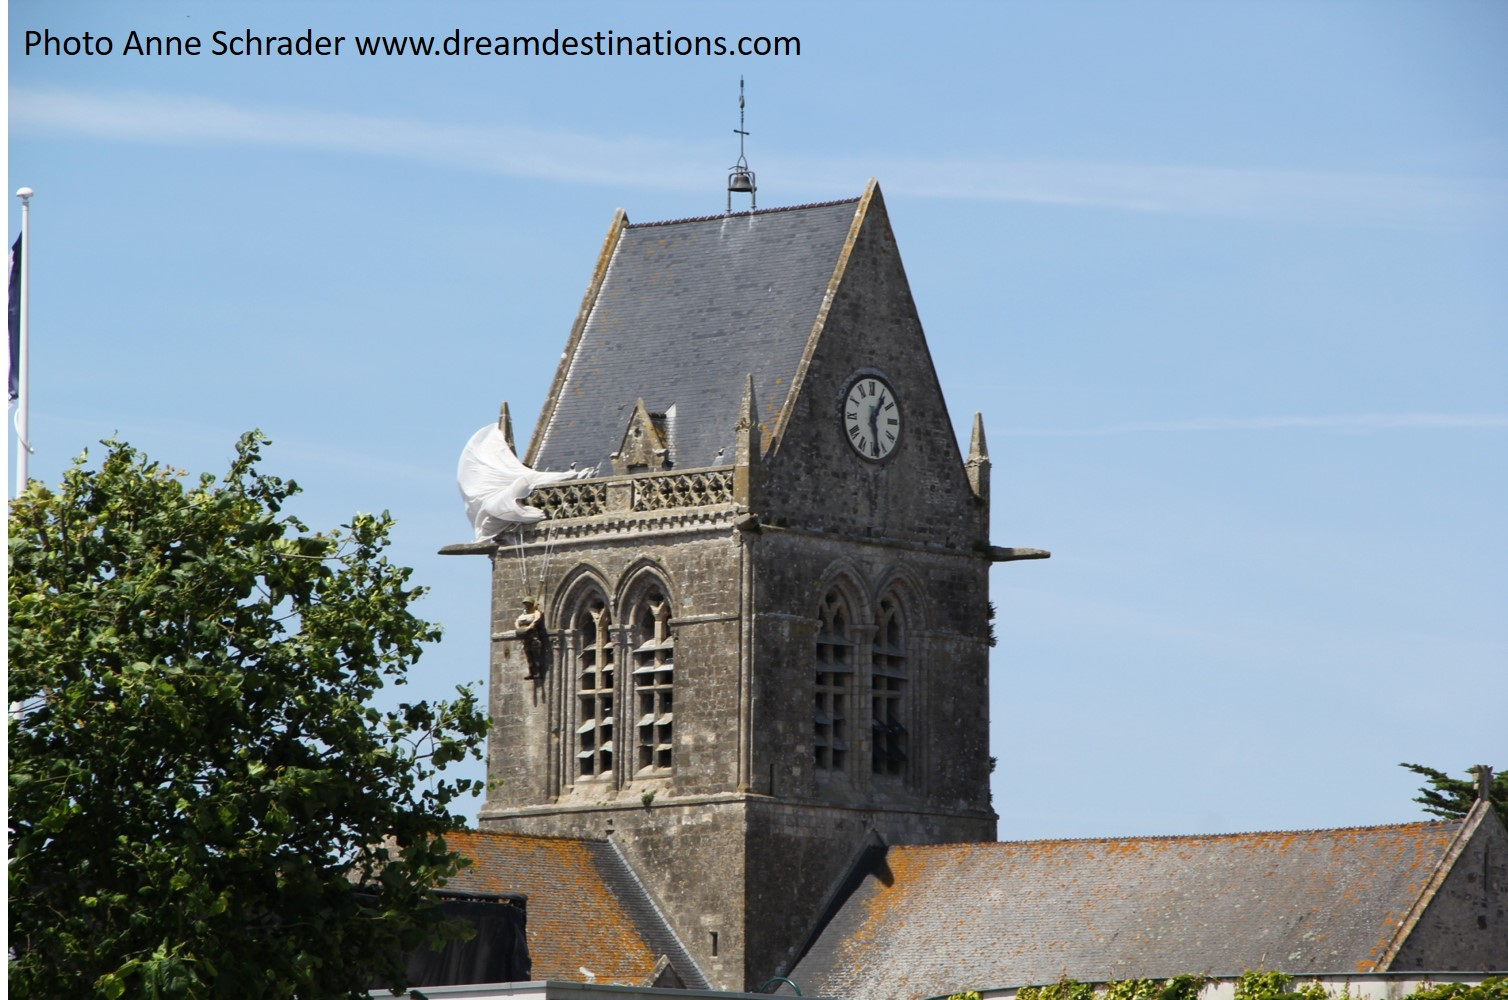 Ste. Mere Eglise church steeple with the replica of a dangling PFC John Steele